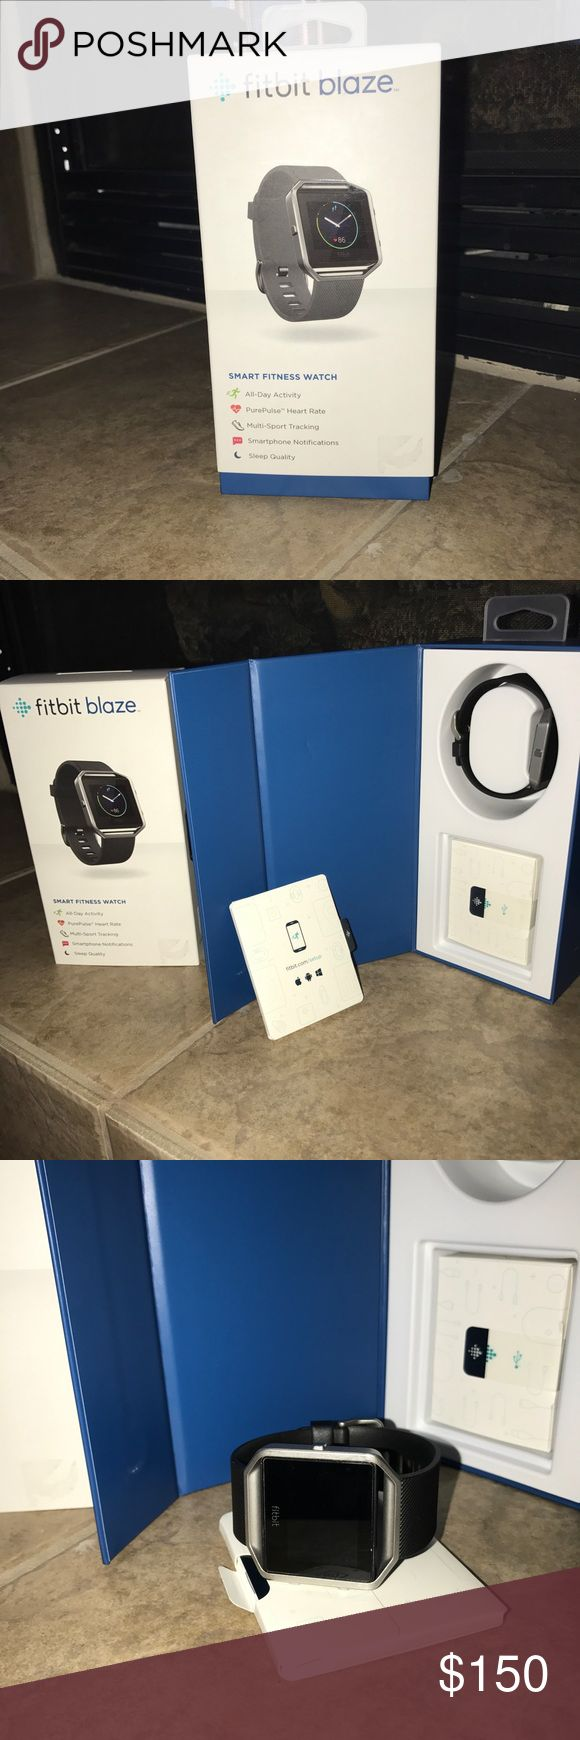 Fitbit Blaze In excellent condition no scratches or cracks comes with charger and booklet from Nordstrom retails at $200 plus tax fitbit Accessories Watches